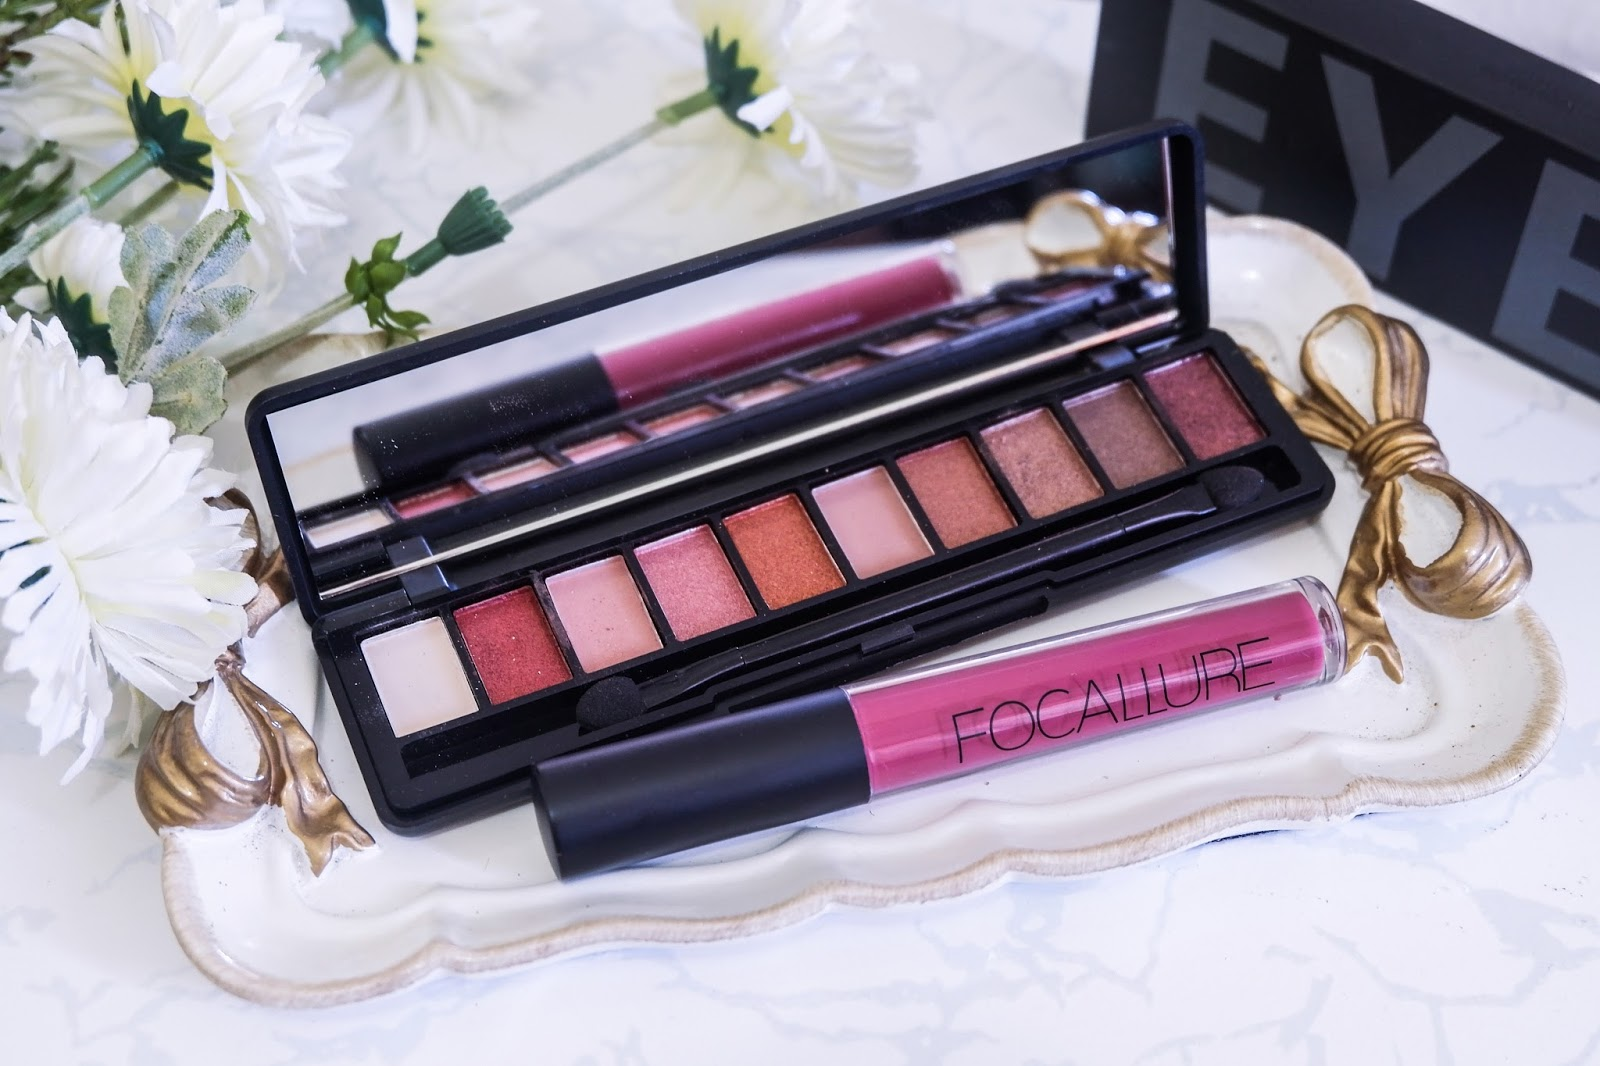 FOCCALURE EYE-SHADOW PALETTE & LIQUID MATTE LIPSTICK REVIEW